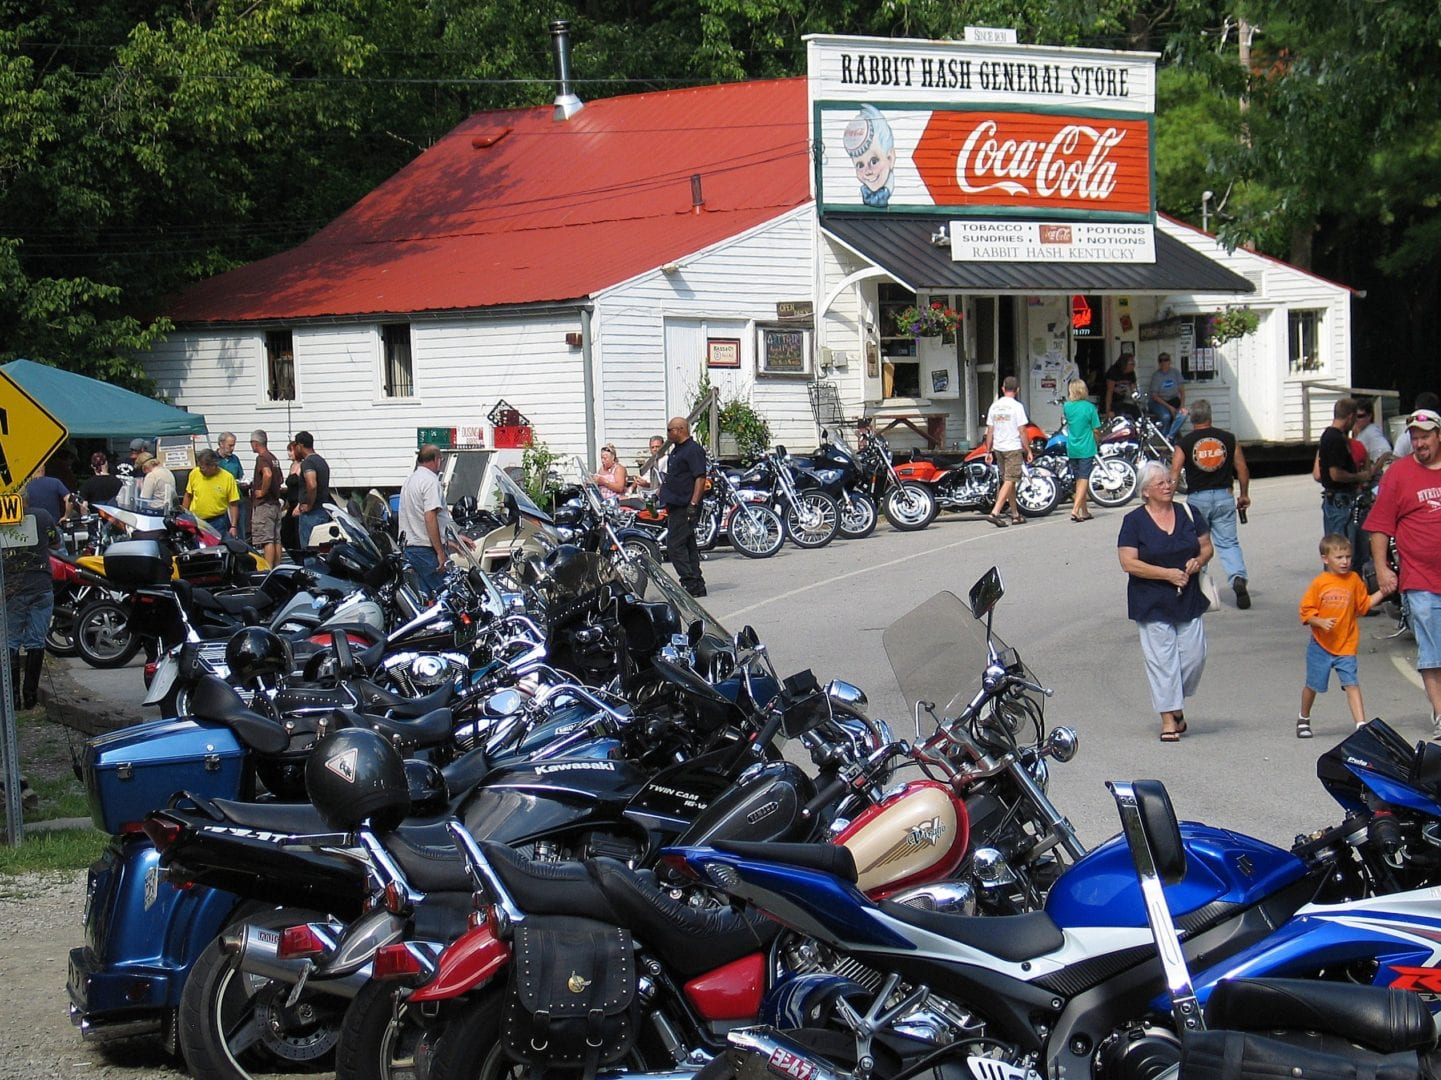 Motorbikes parked near the Rabbit Hash General Store